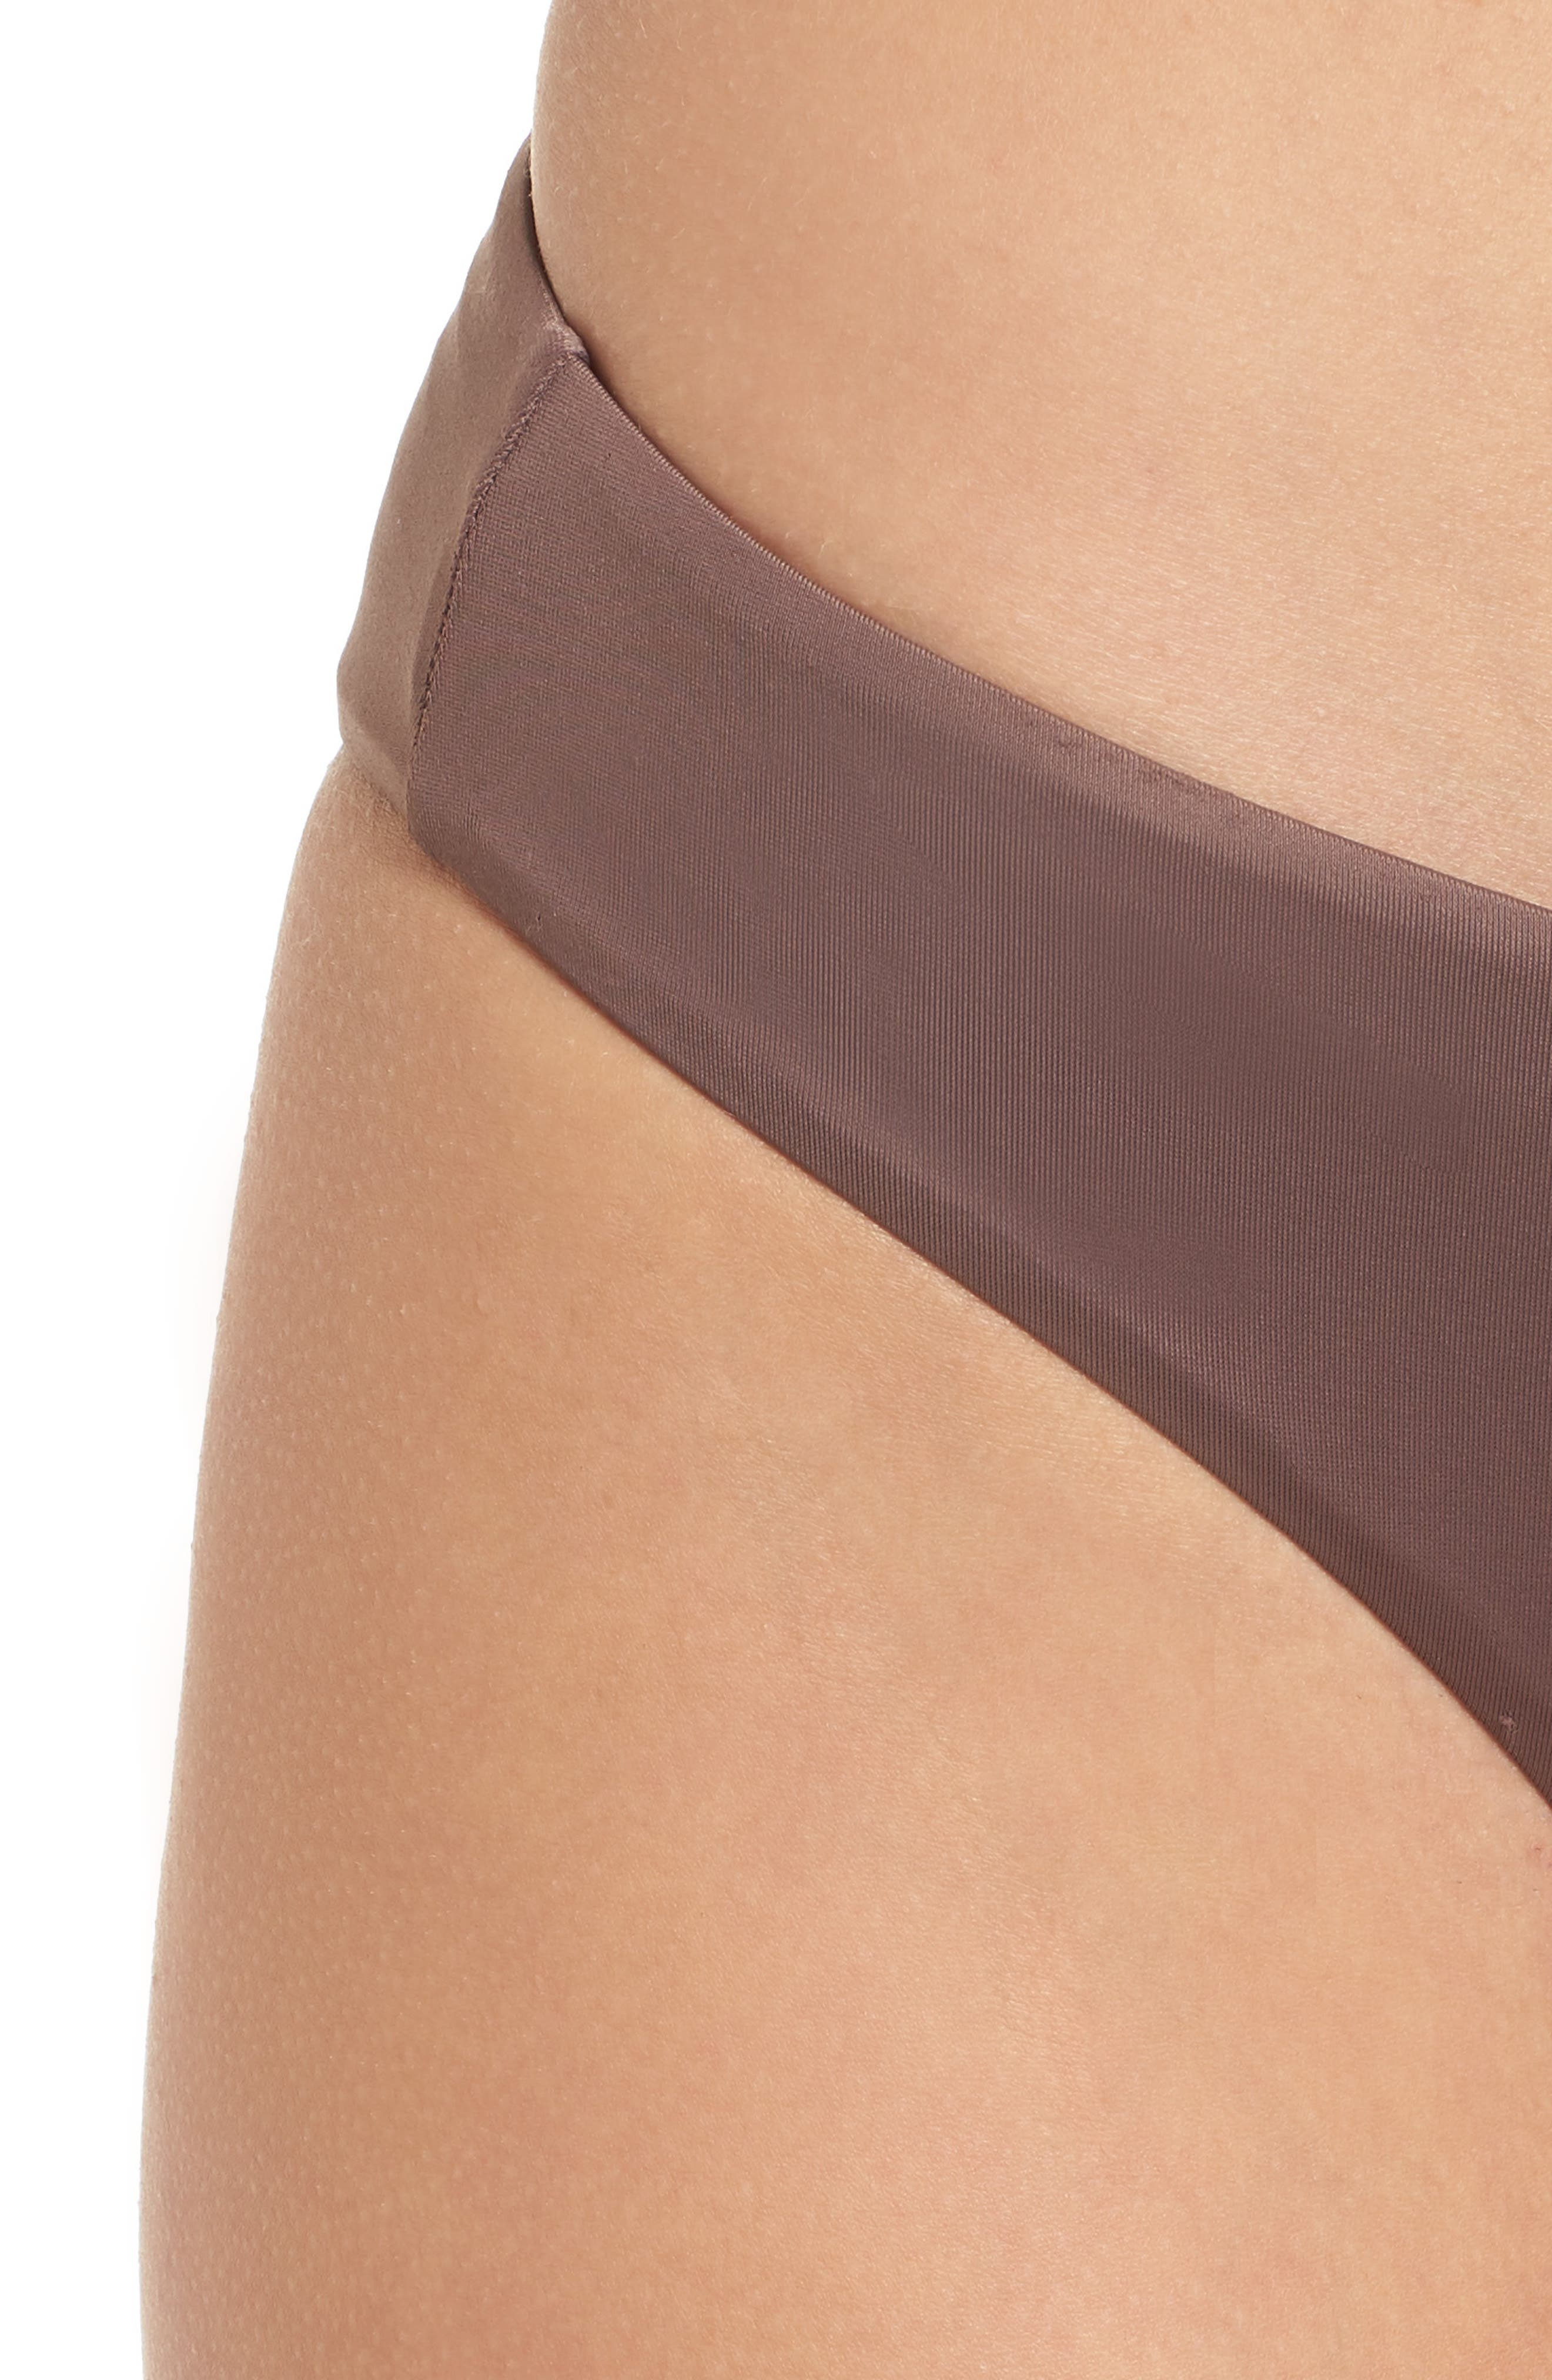 Solid Full Hipster Bikini Bottoms,                             Alternate thumbnail 4, color,                             Raisin